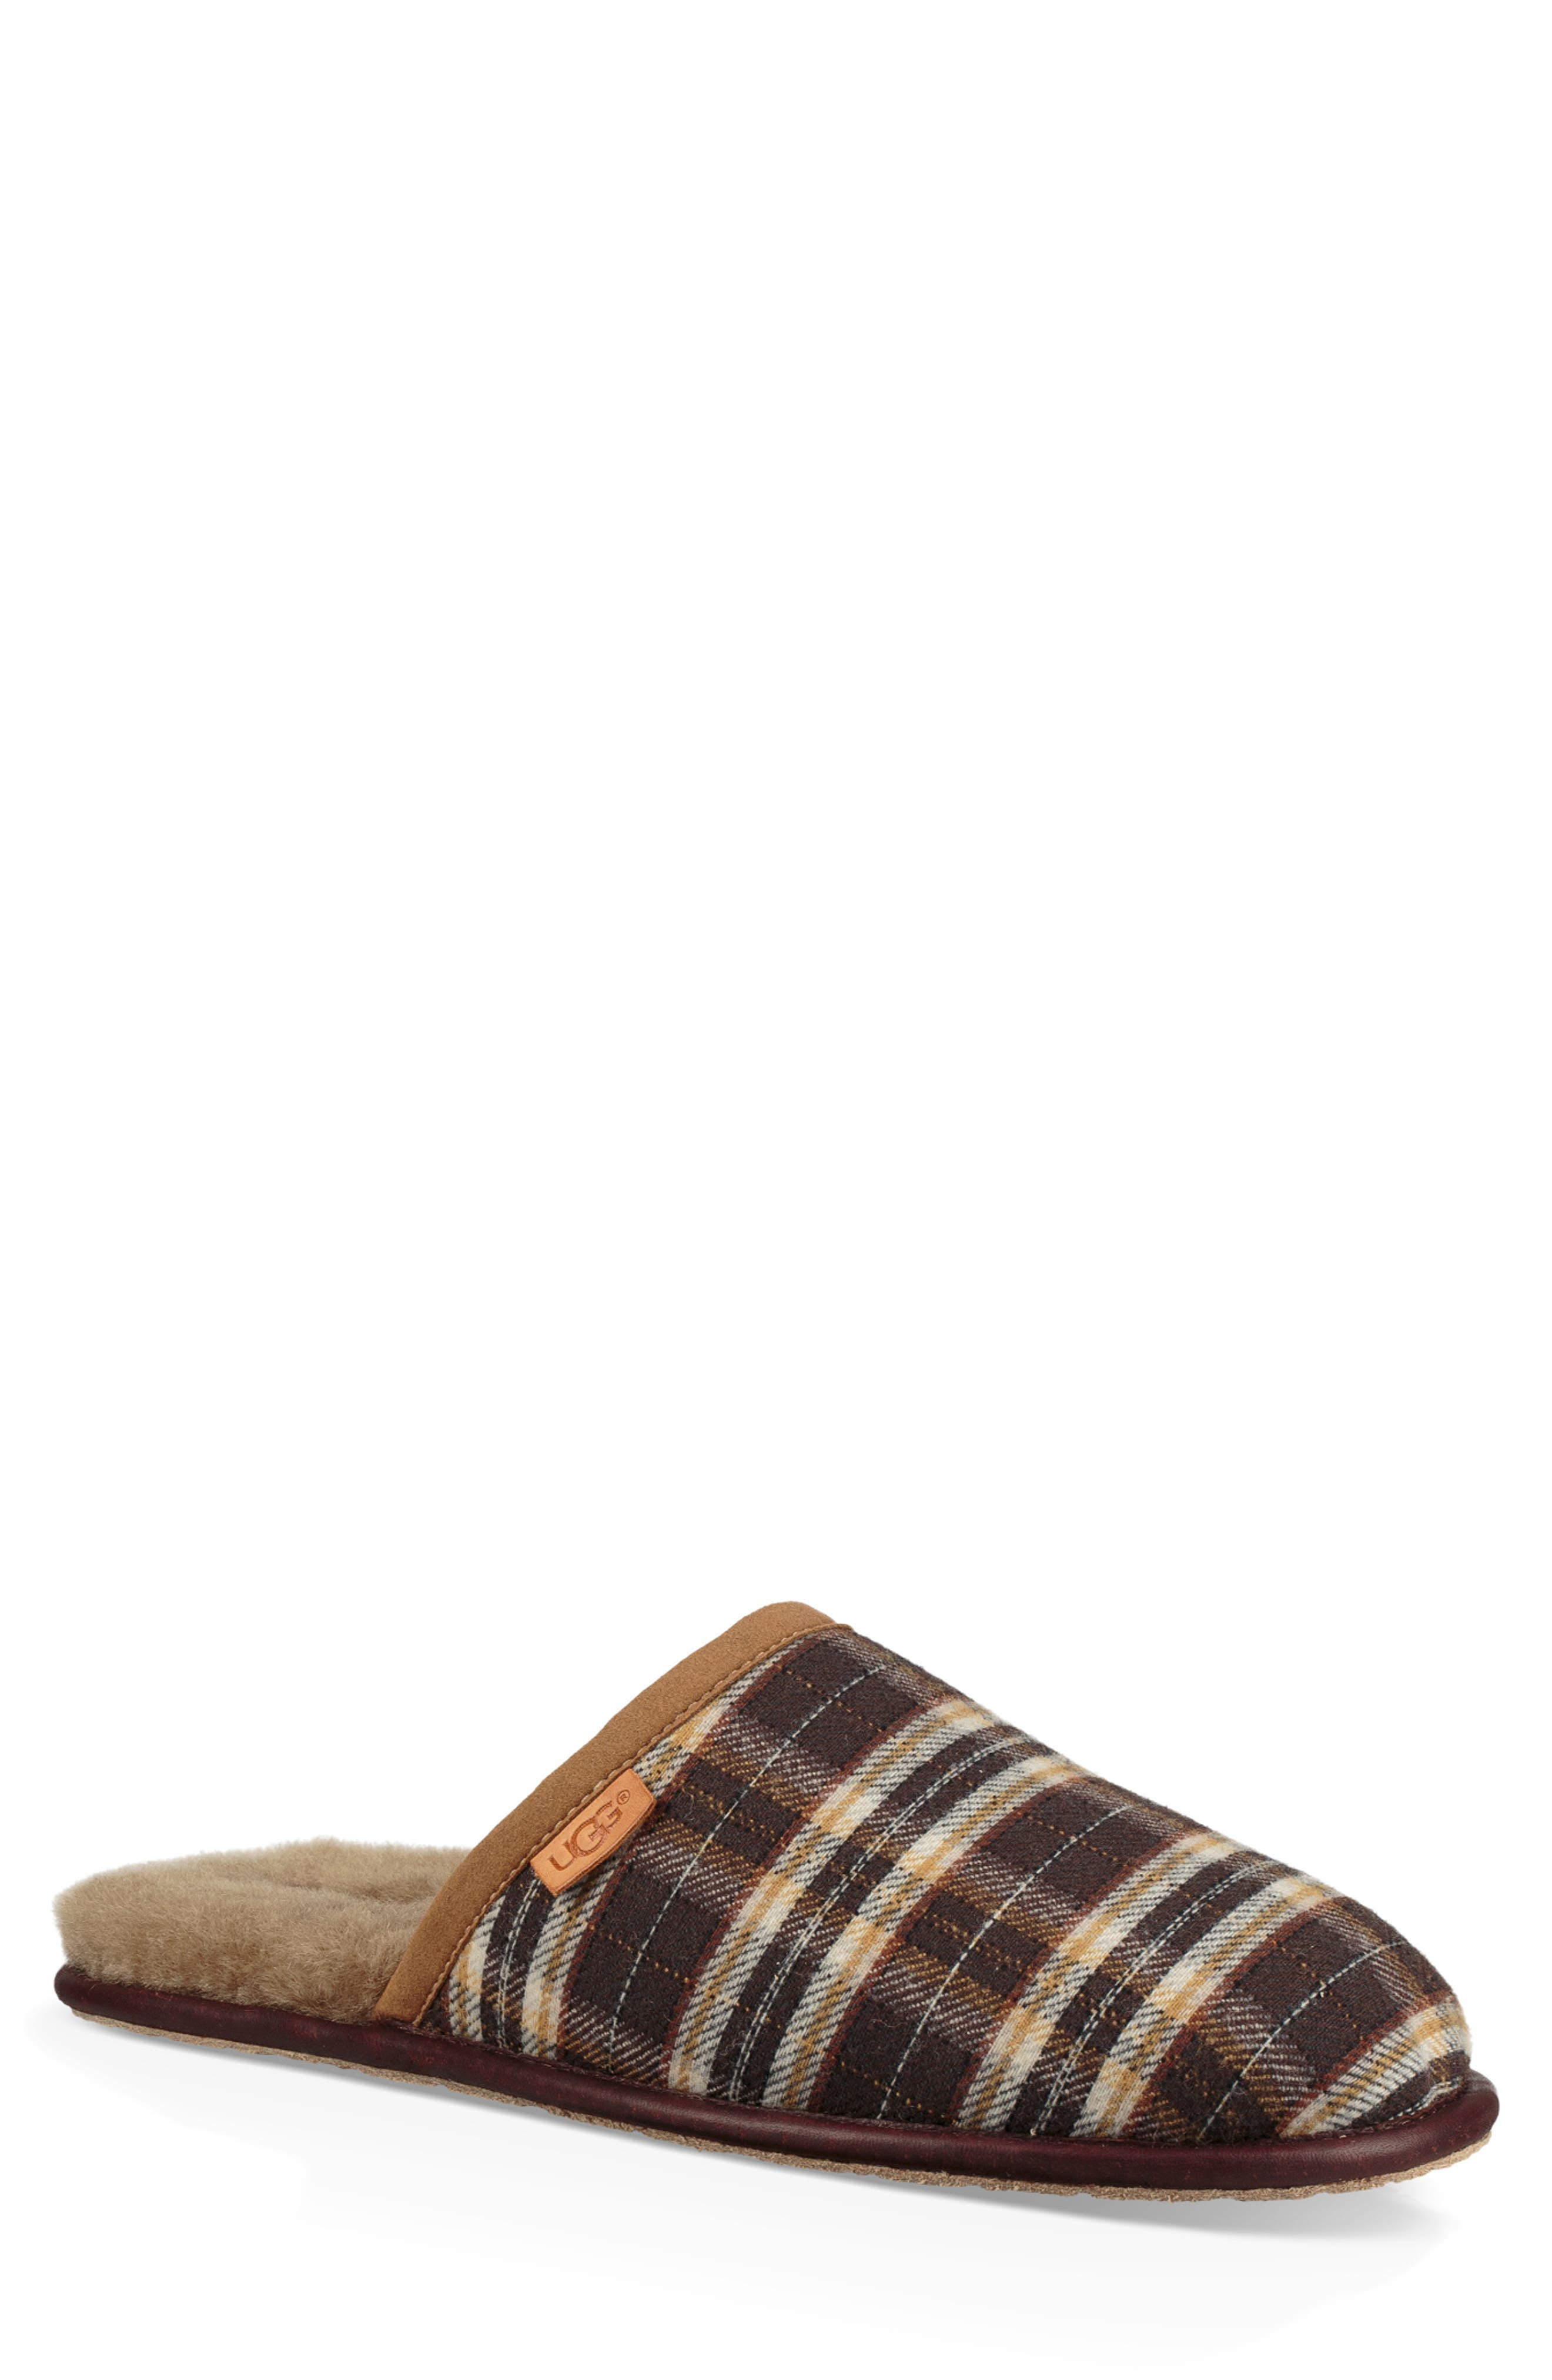 Scuff Slipper,                         Main,                         color, CHESTNUT